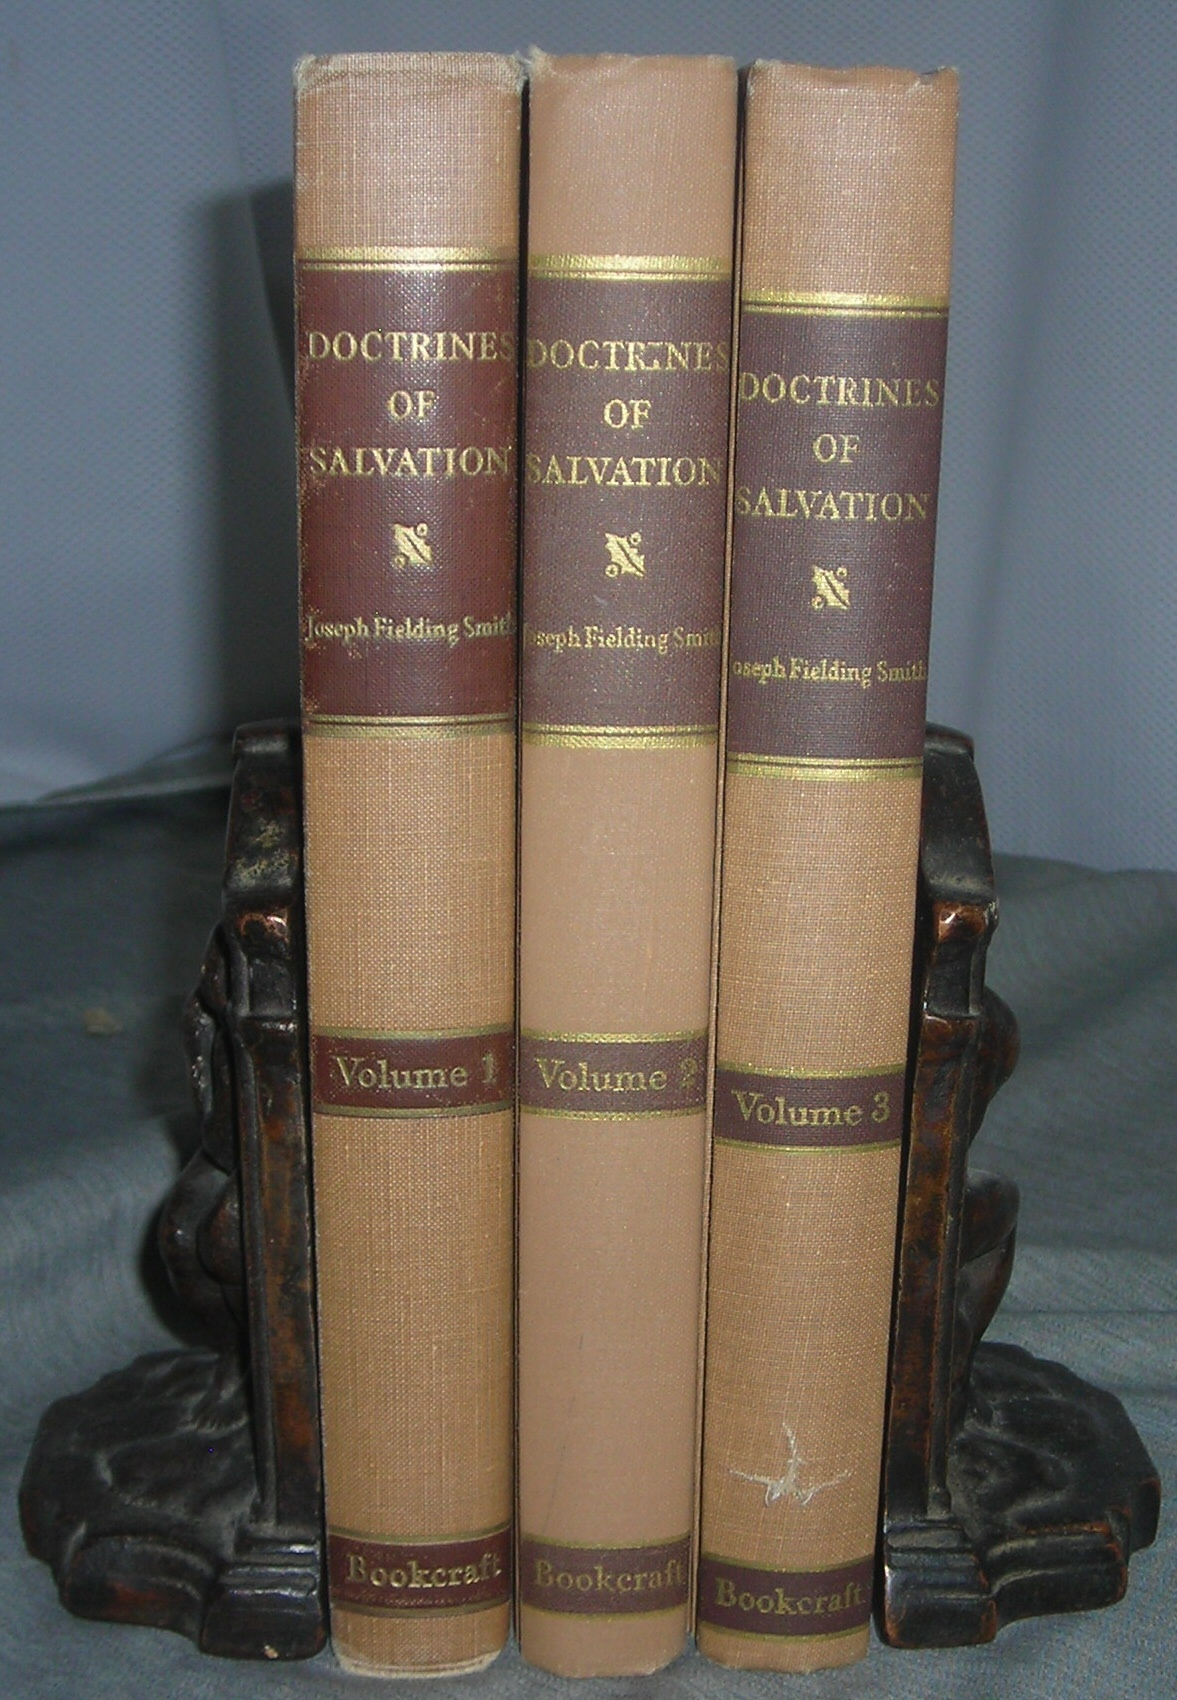 Image for DOCTRINES OF SALVATION - 3 VOLUME SET - Sermons and Writings of Joseph Fielding Smith - Volumes 1-3